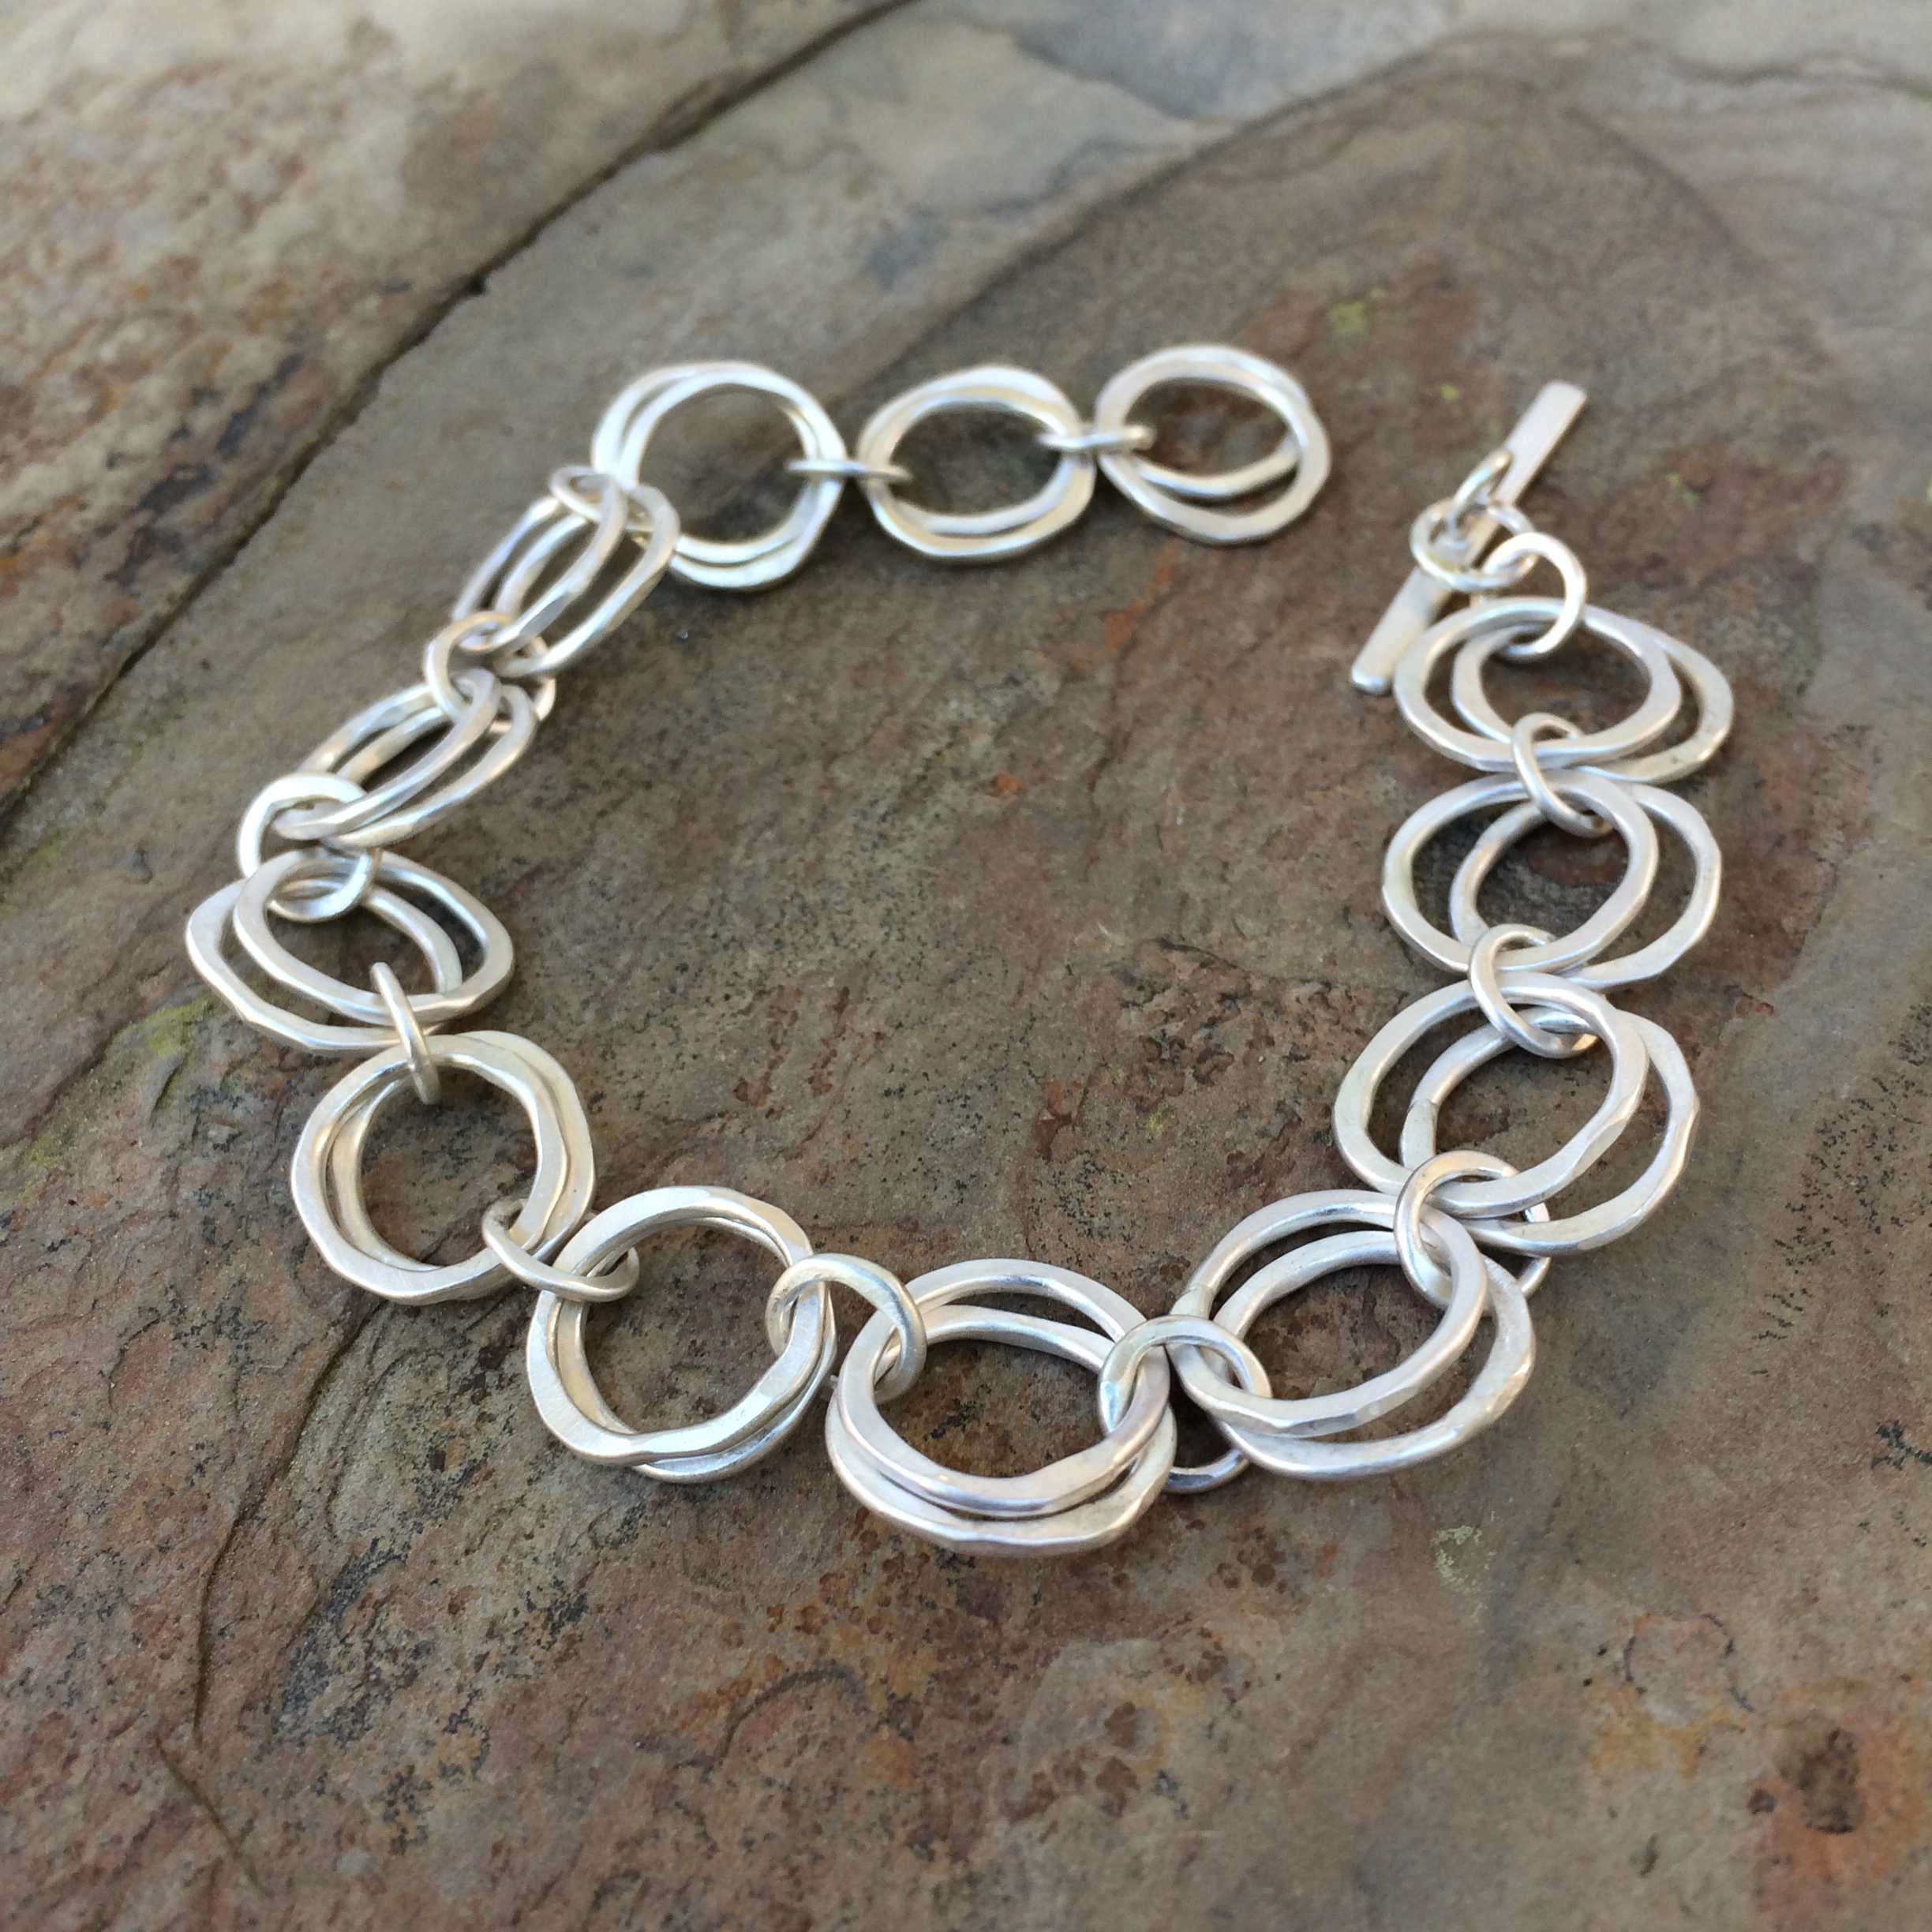 Perfect DIY Jump Ring Coil Bracelet Perfect DIY Jump Ring Coil Bracelet new images